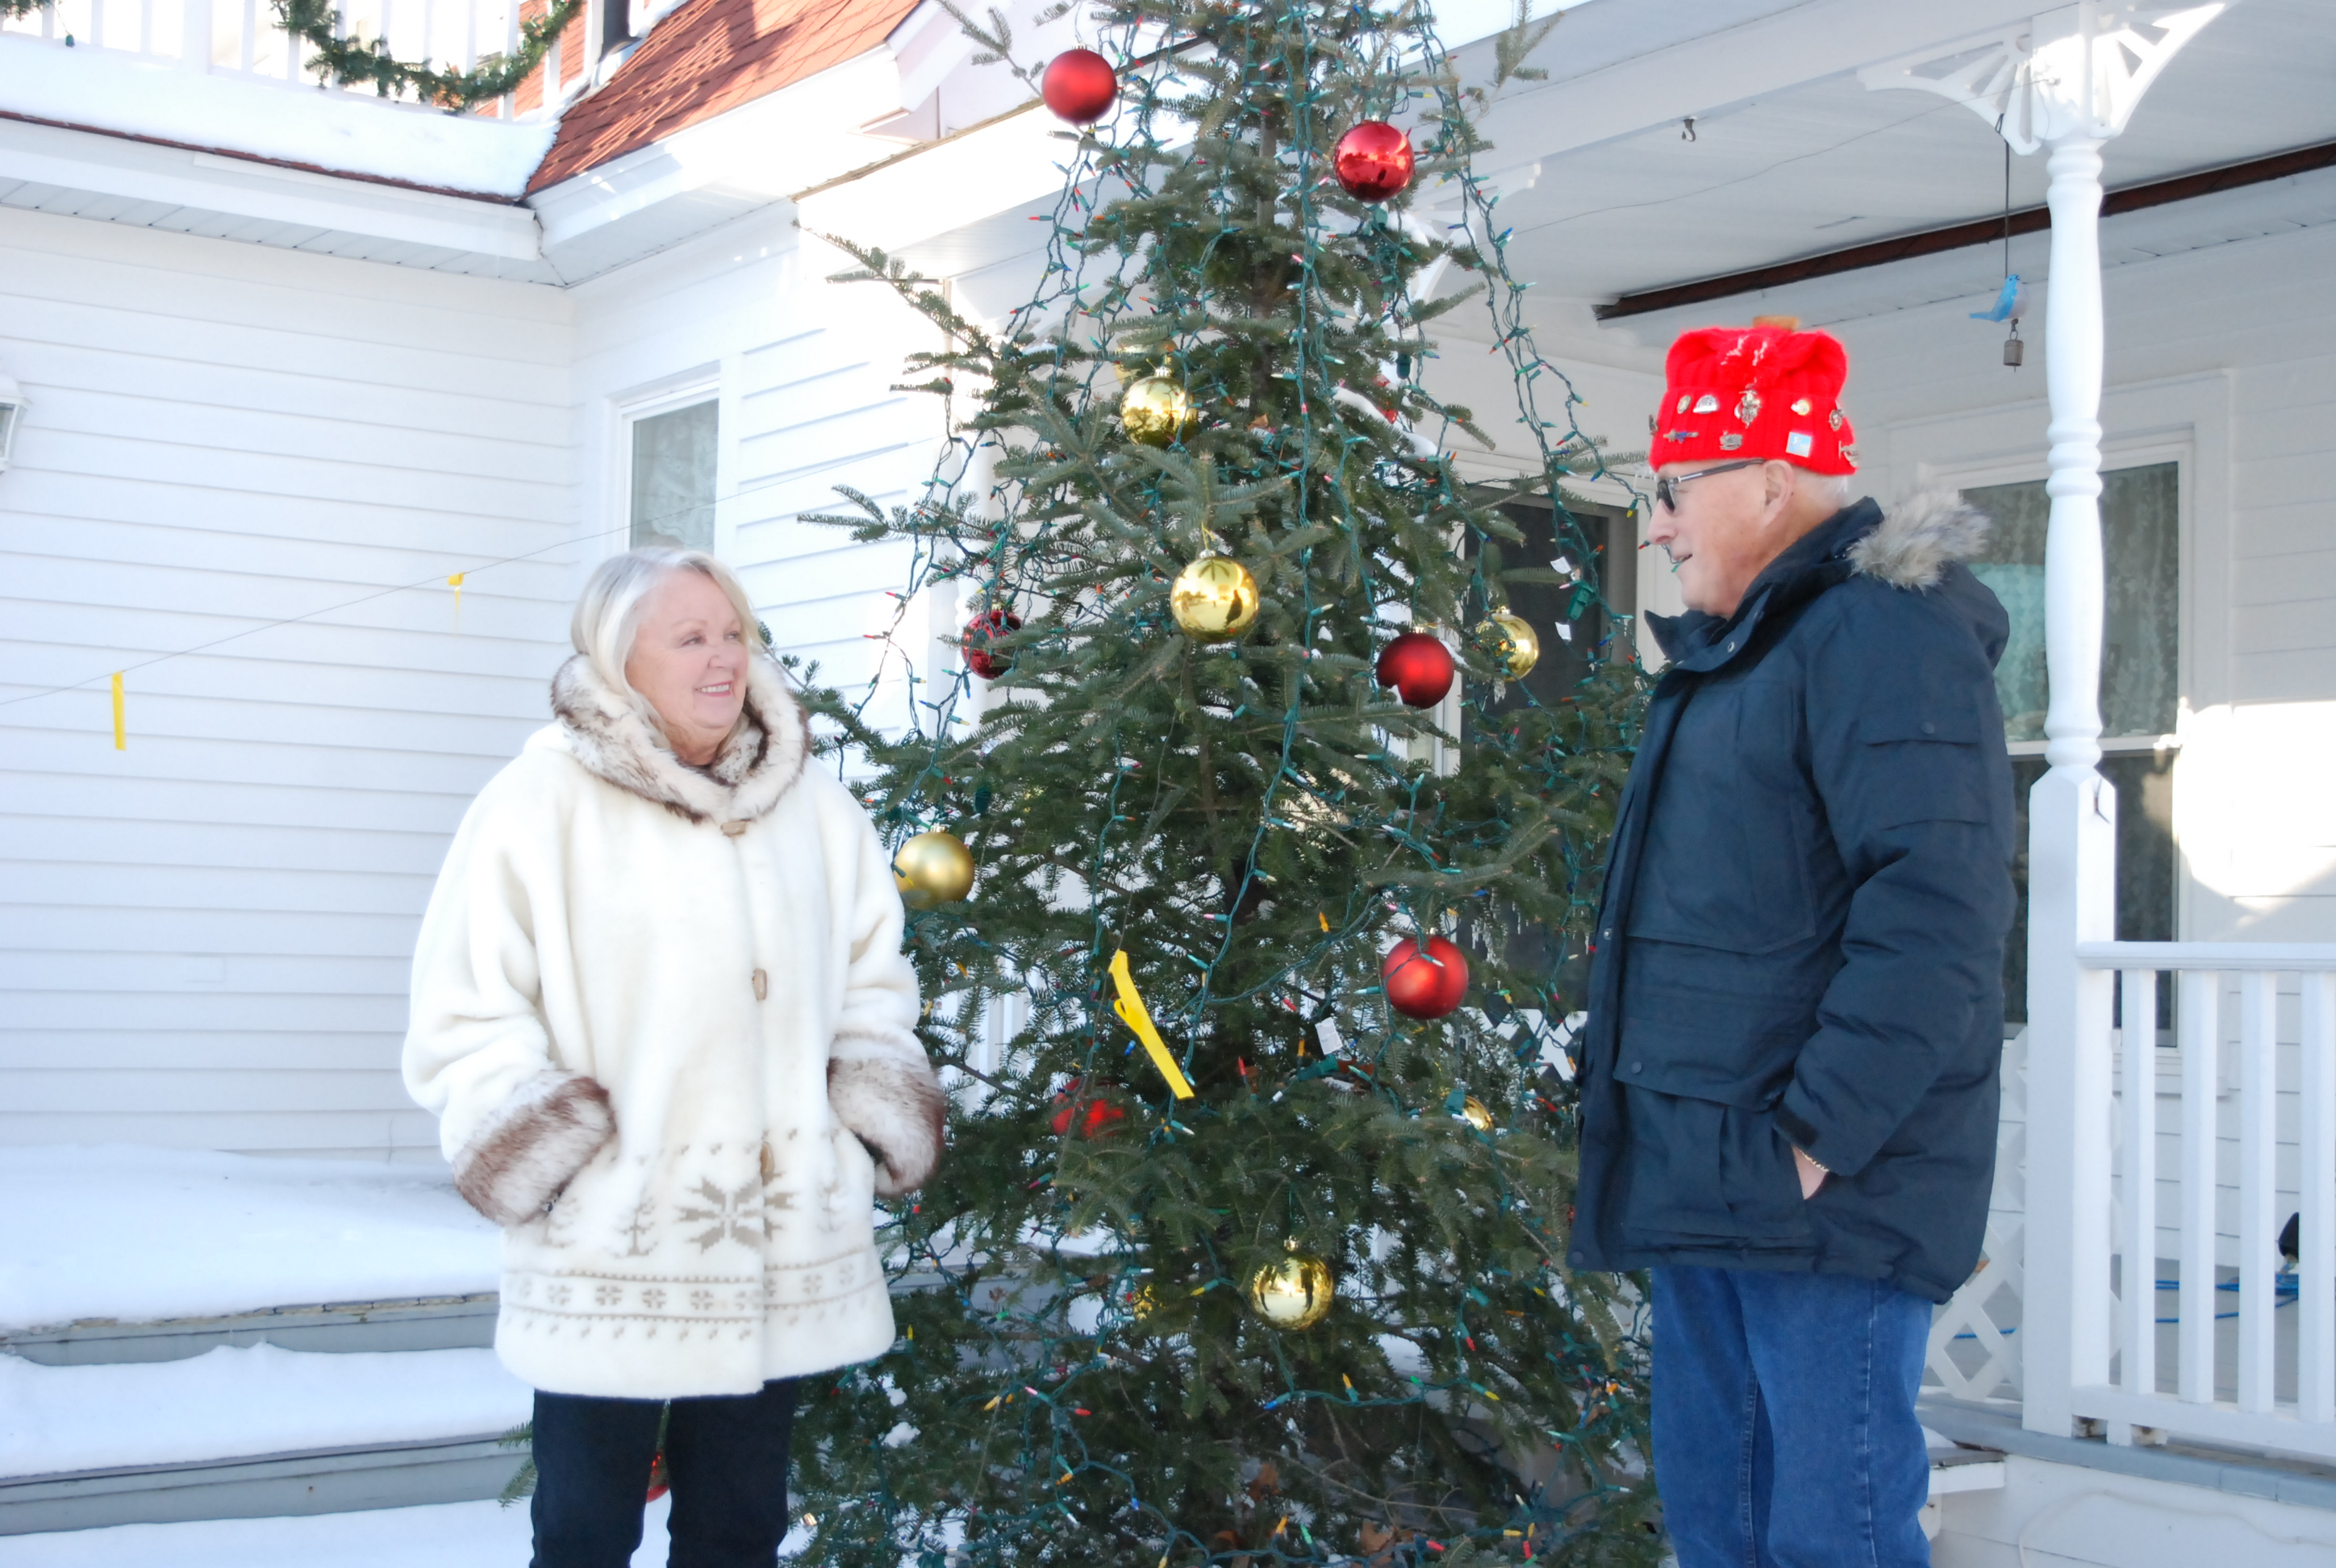 residents decorate homes yards for holidays news sports jobs daily press